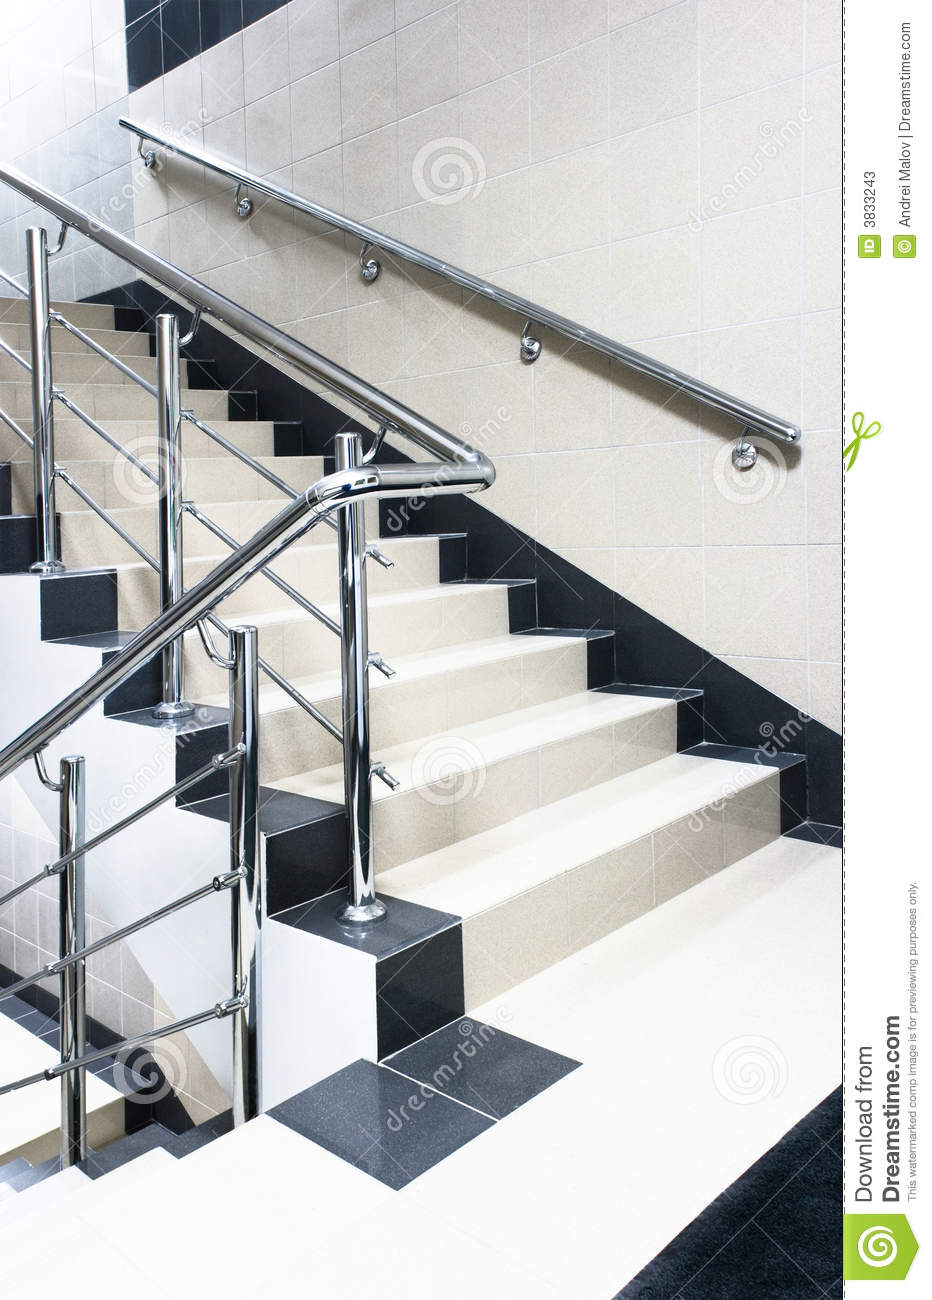 Stock Photos Staircase Stair Railing Image3833243 on Modern House Stairs Design